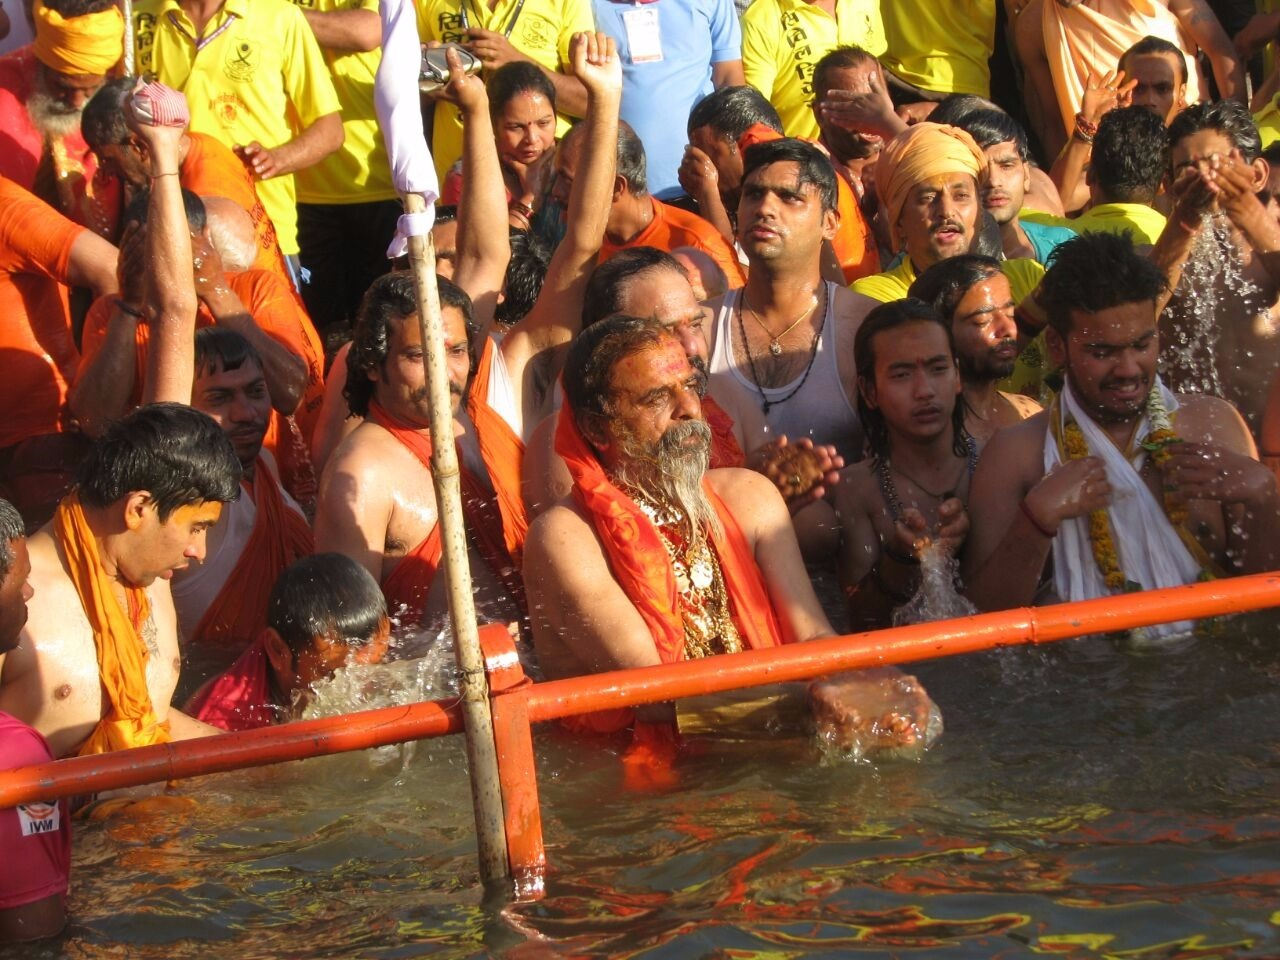 simhastha kumbh mela in ujjain hindi articles mithilesh hindi editorial 23612367230623422368 235423752326 lance writer journalist digital agency